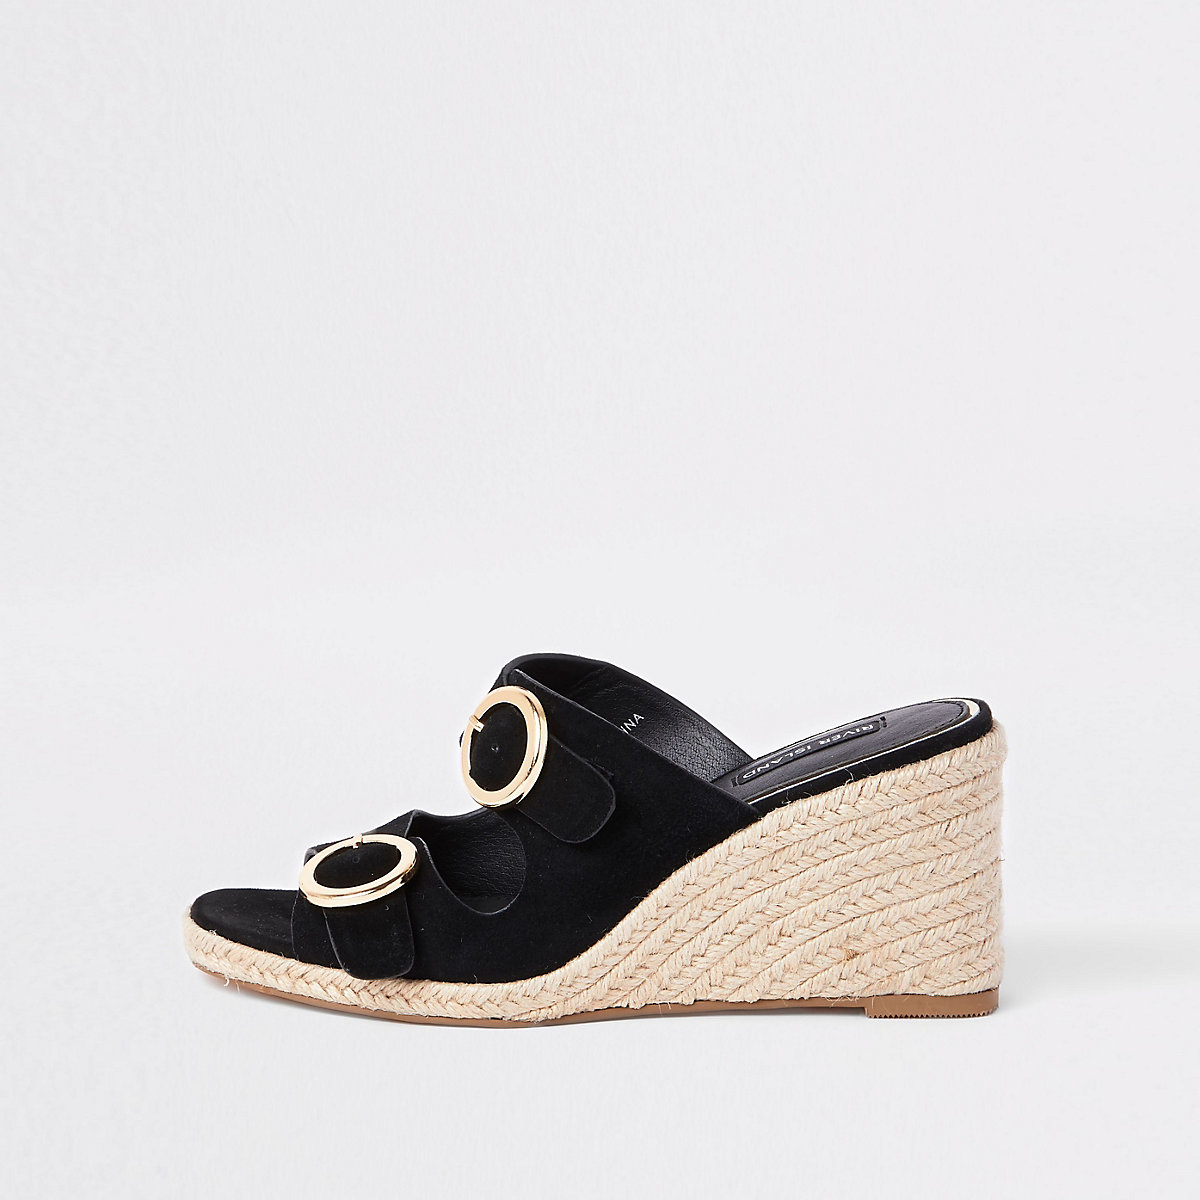 Black buckle square toe wedges